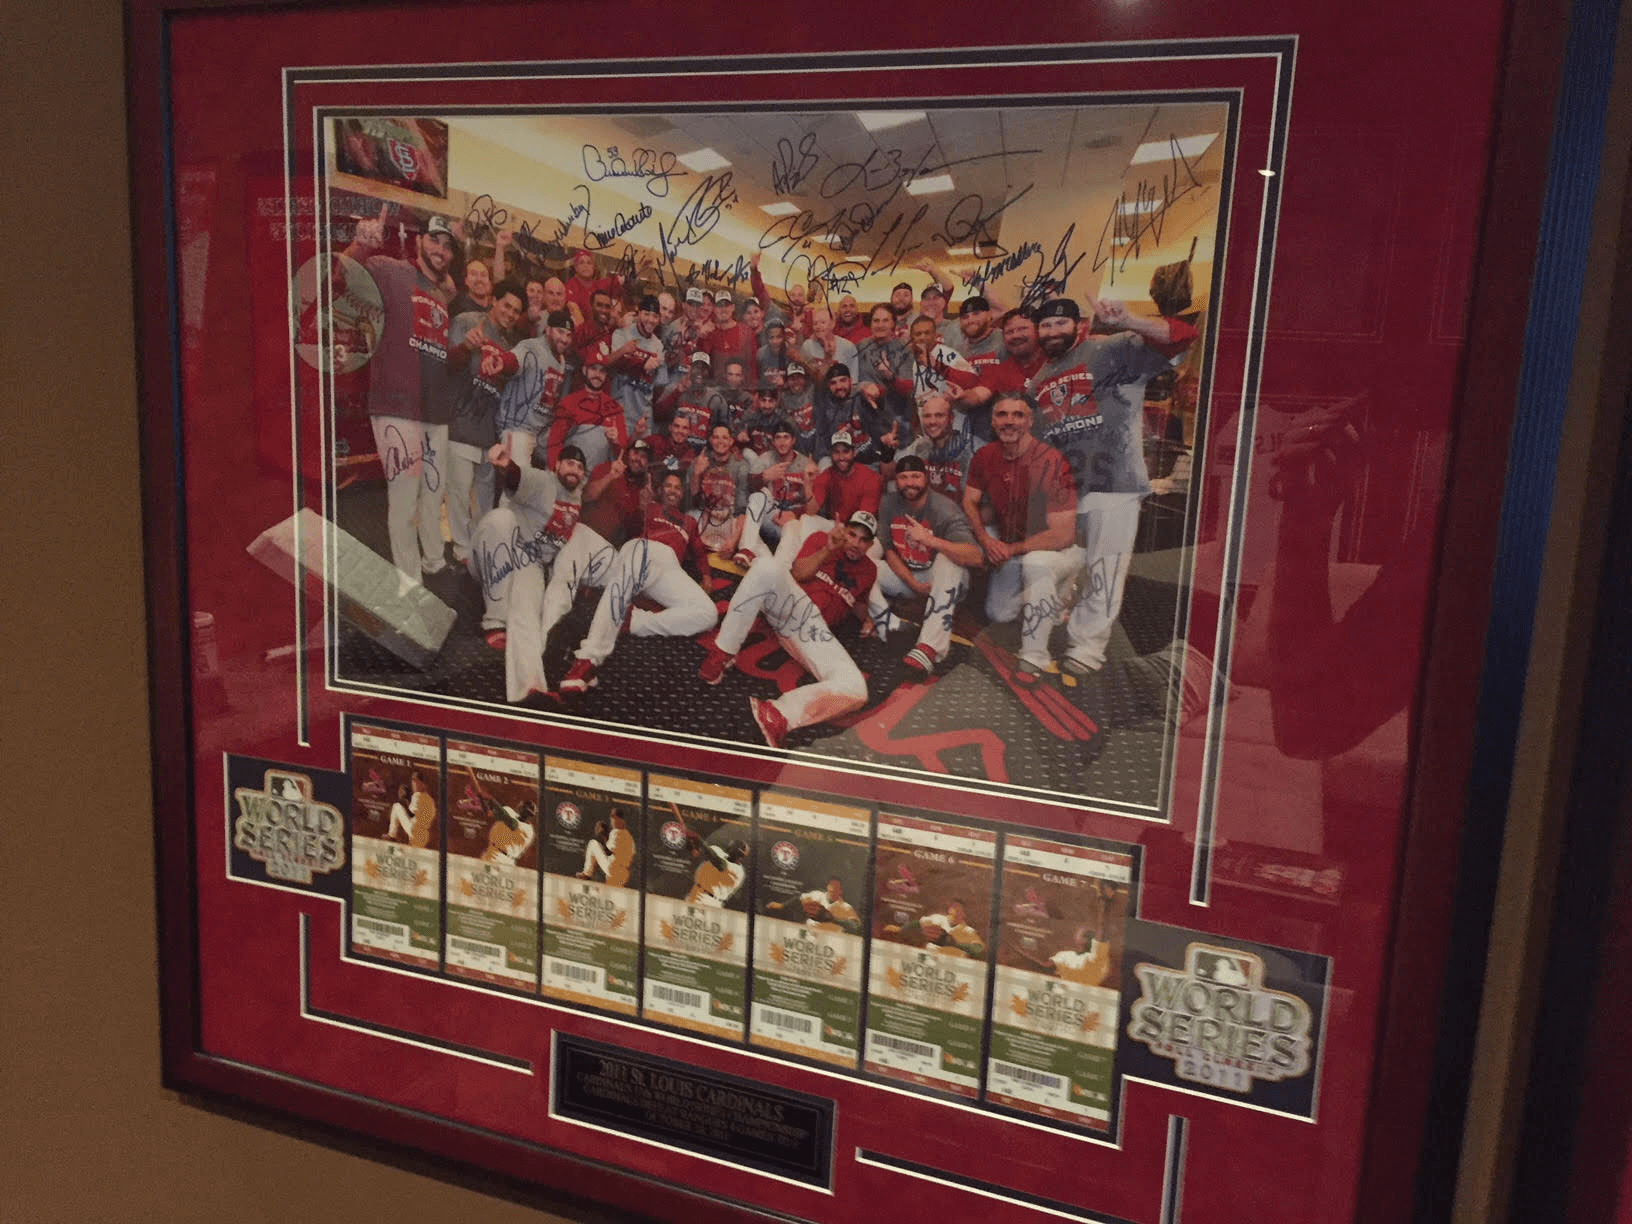 Trading cards framed on wall